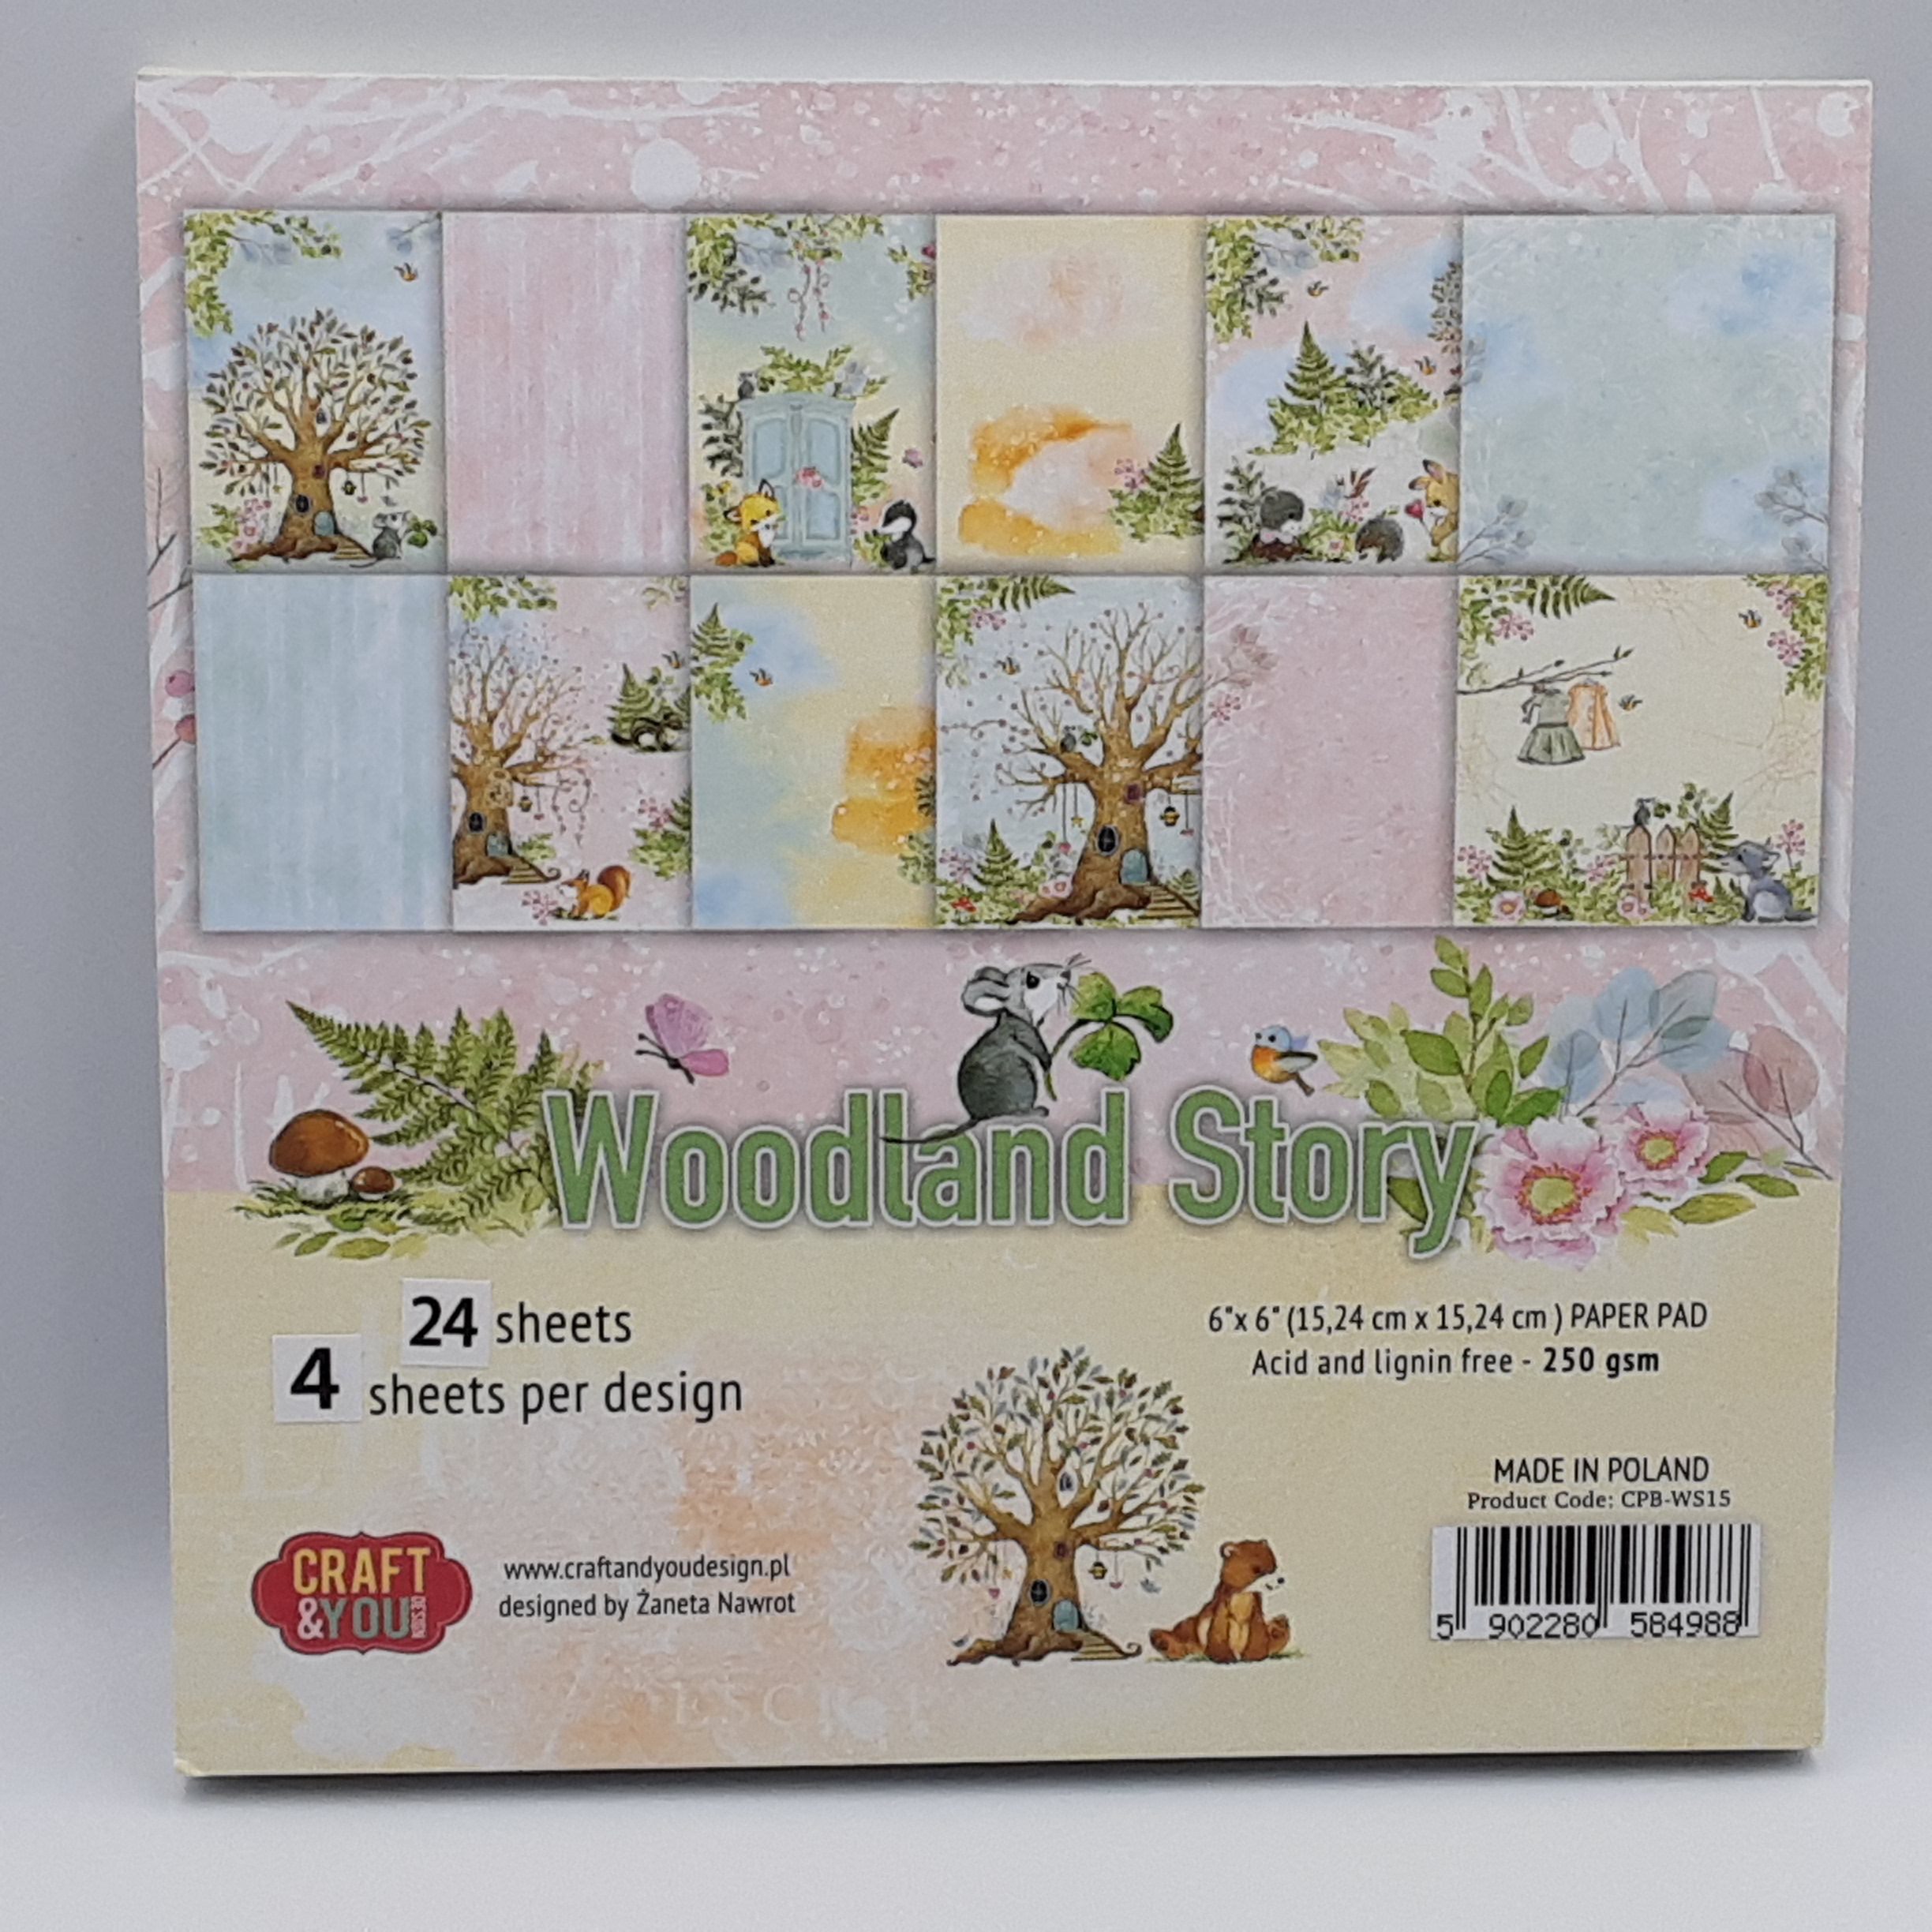 Woodland story paperpad 6